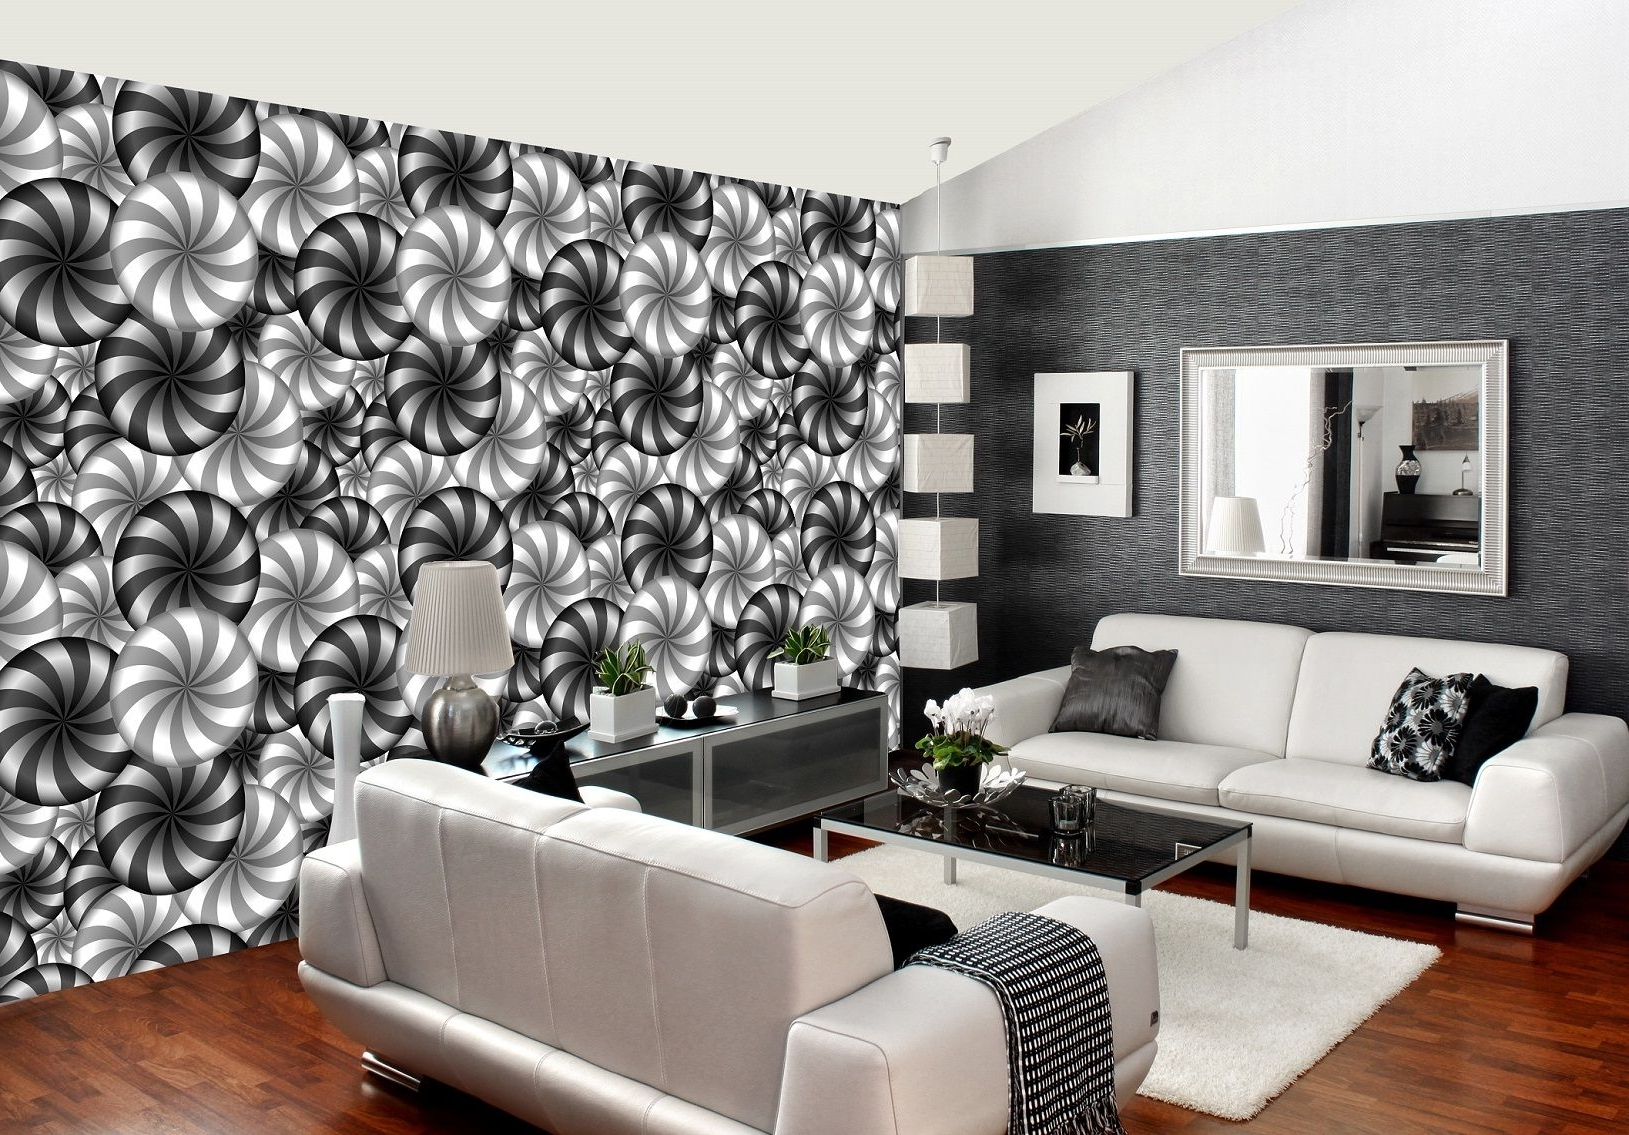 3D Illusion Optical B&w Abstract Art Decor Wall Mural Photo Pertaining To Recent Abstract Art Wall Murals (View 1 of 15)